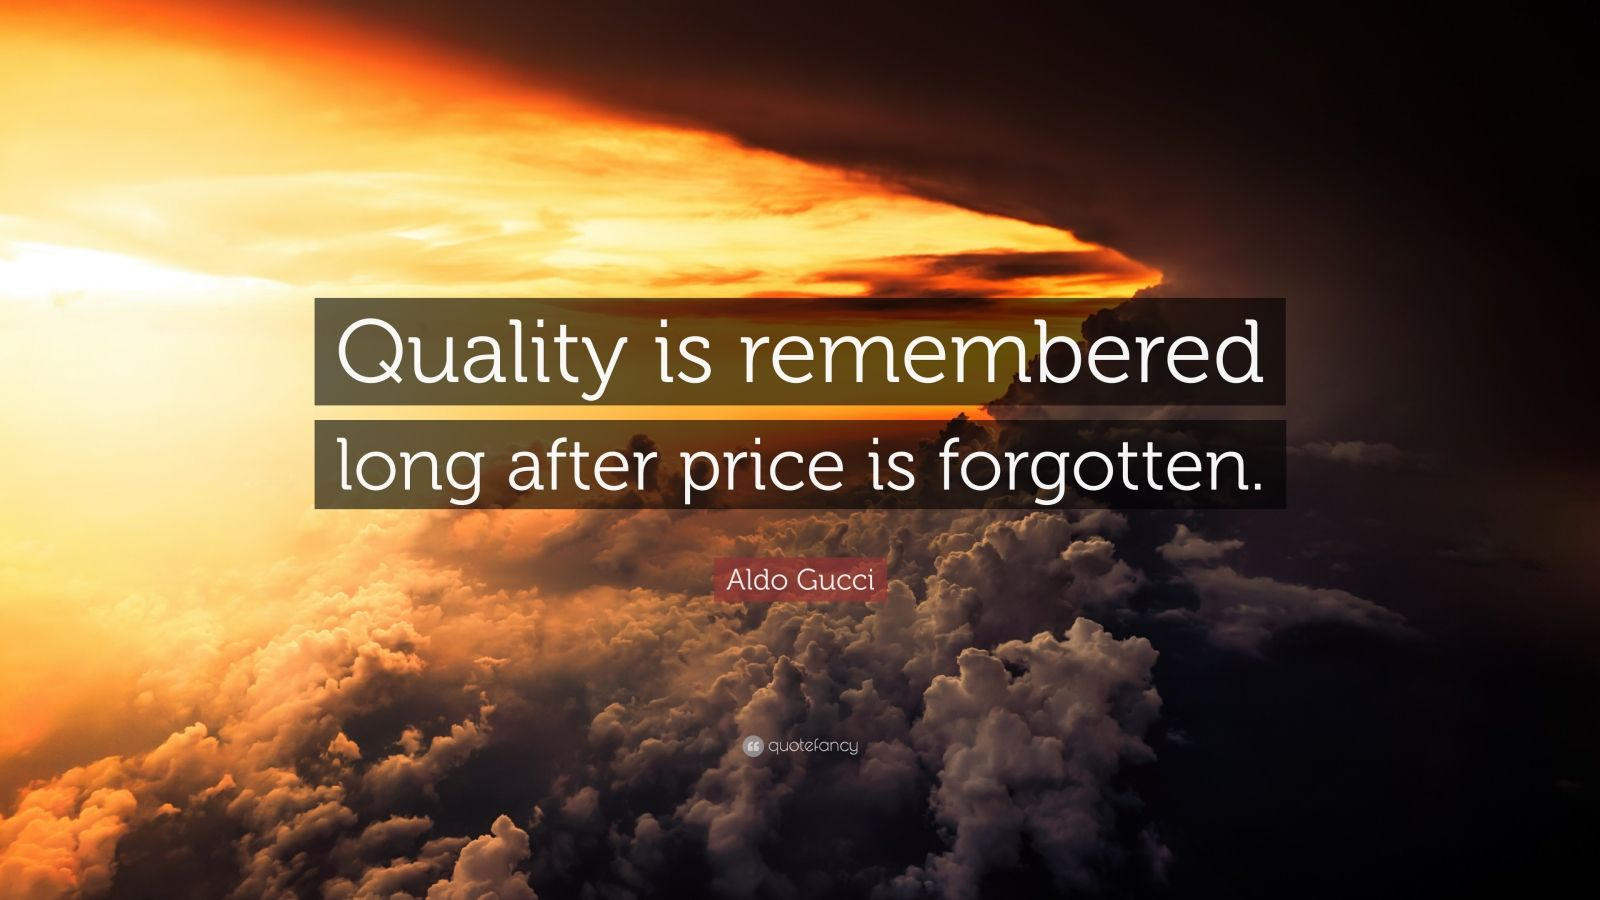 Quality is remembered long after price is forgotten essay help